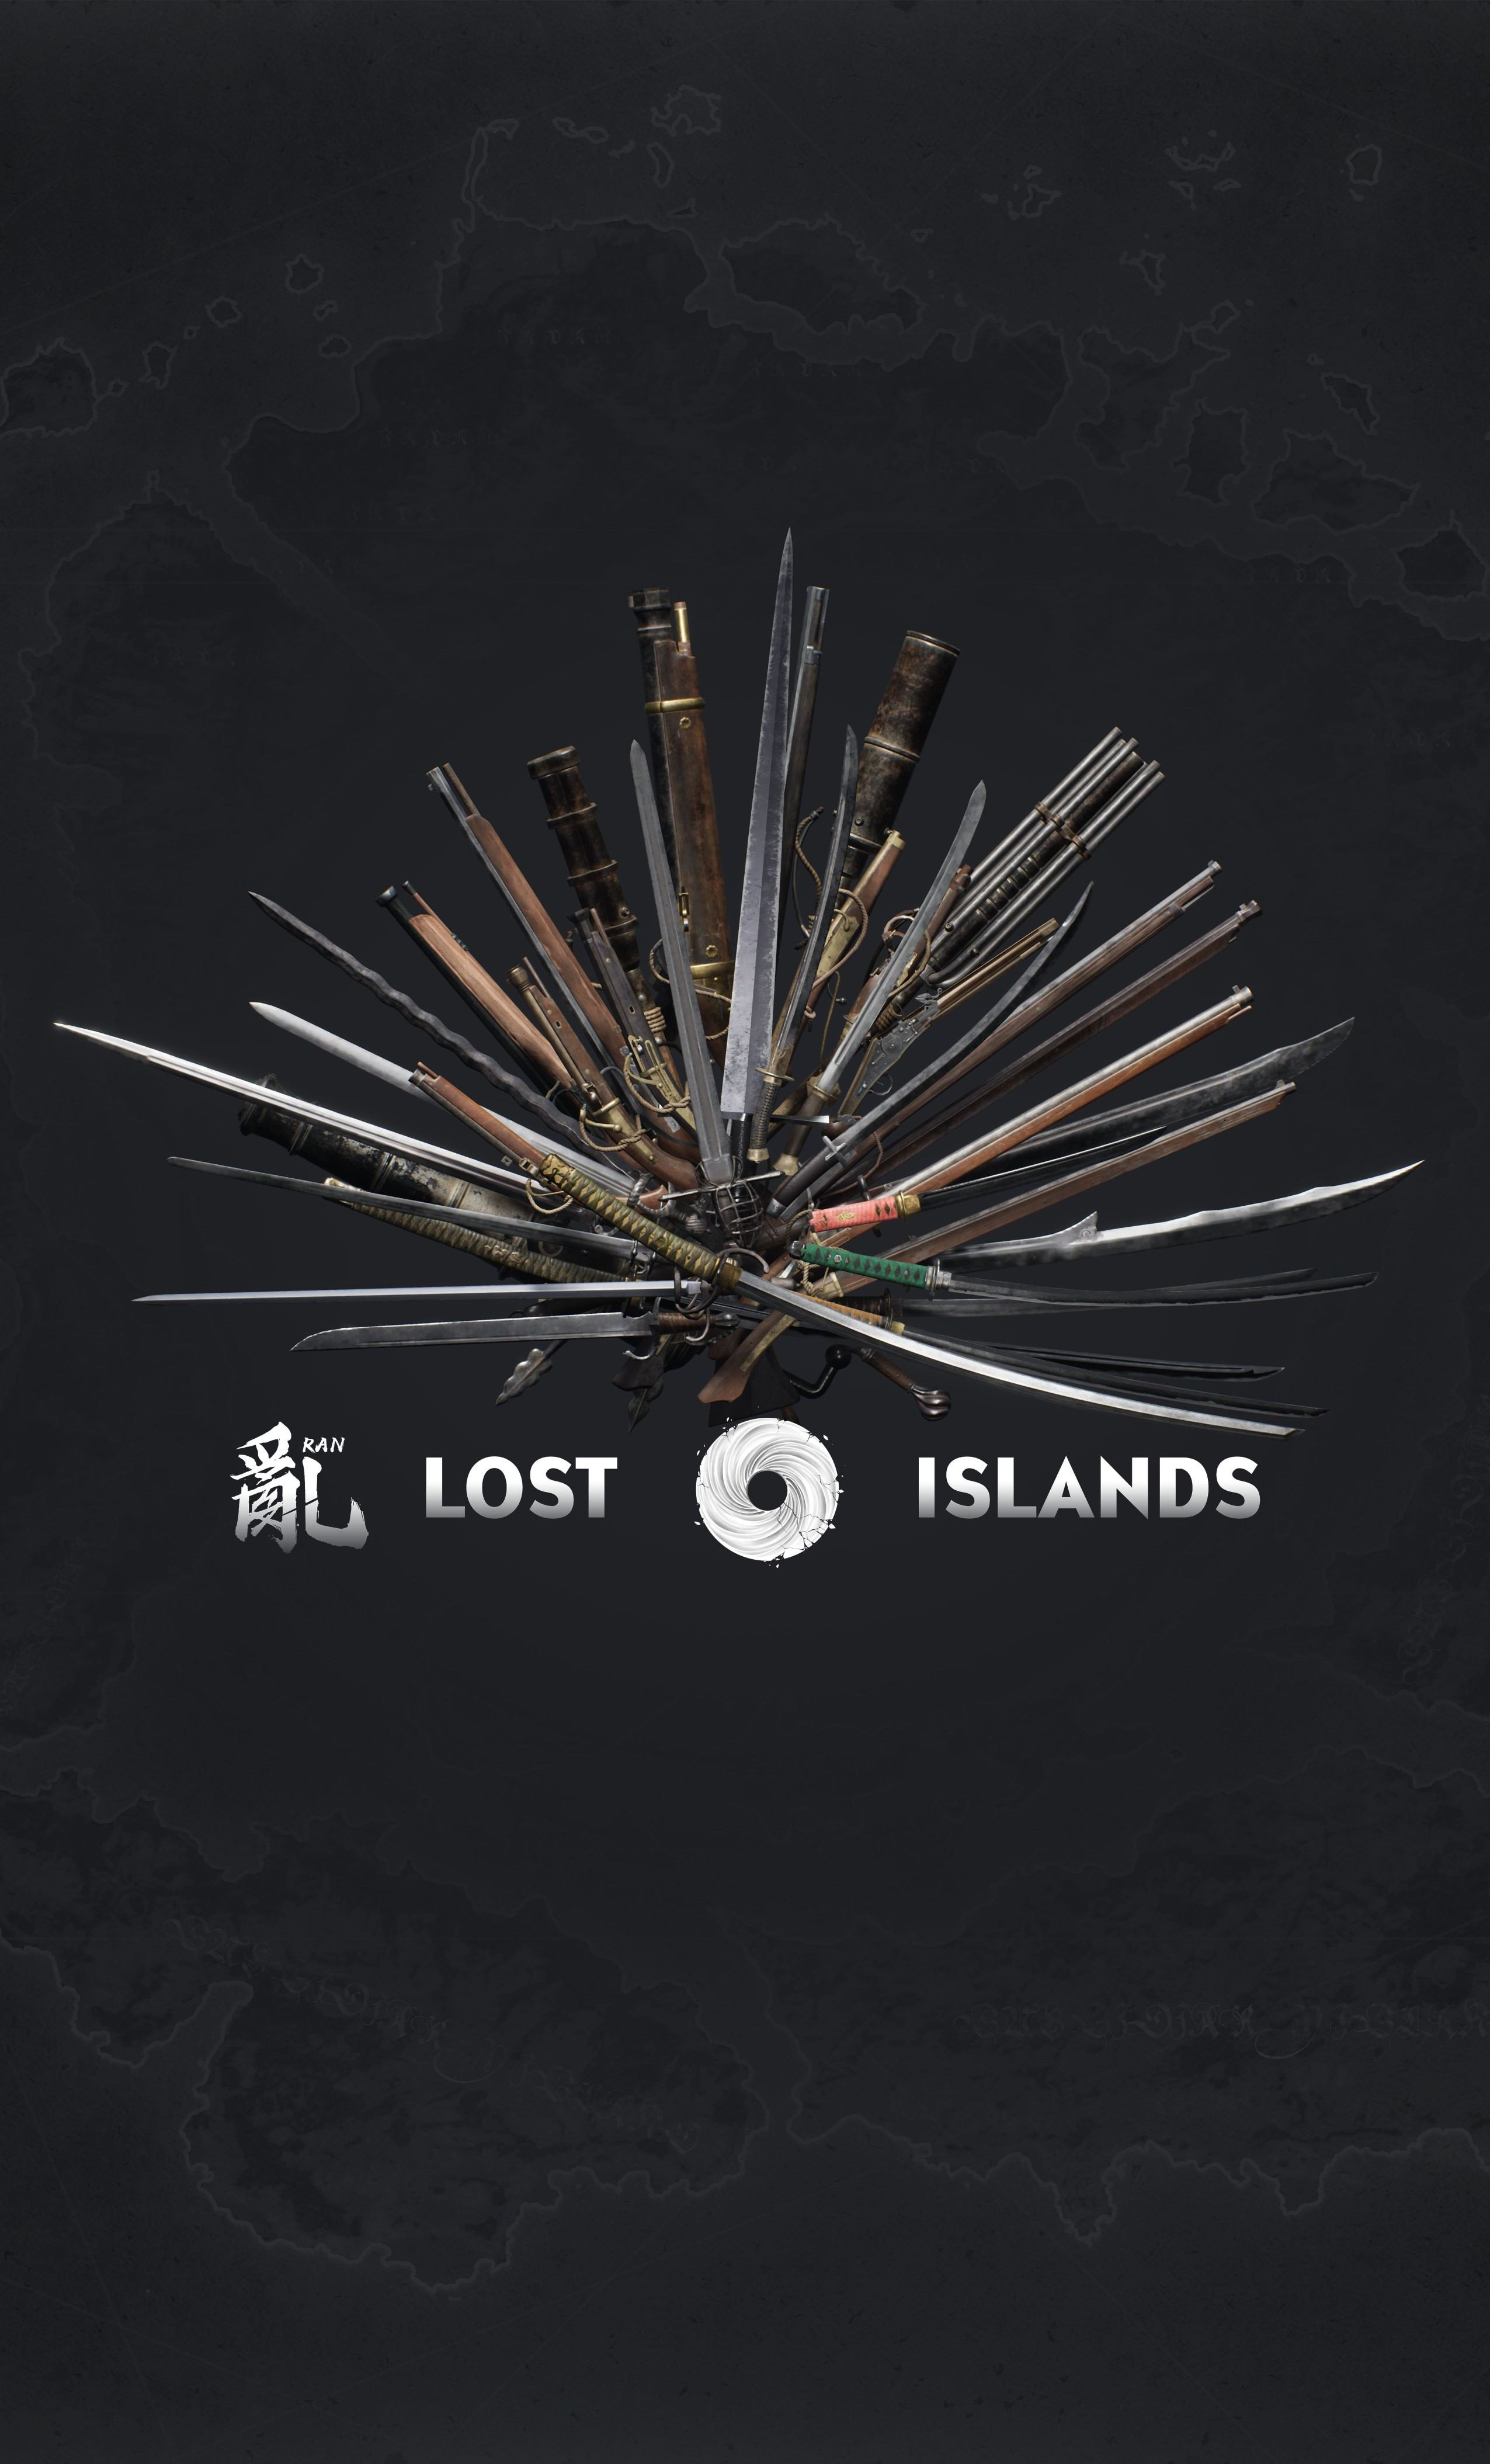 RAN Lost Islands Weaponry 02